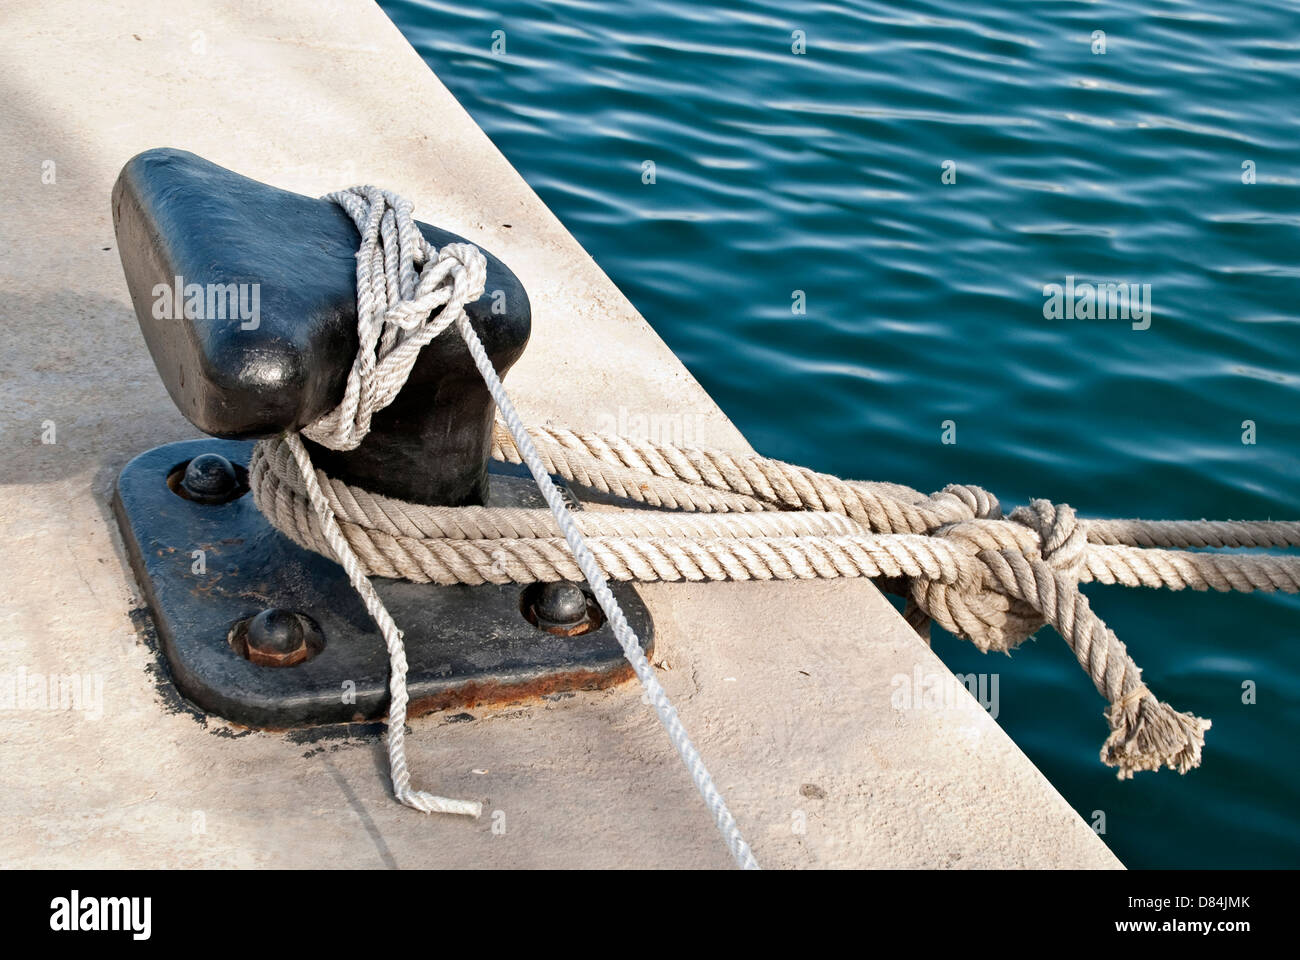 Noray, amarre de barcos – Bitt with knot Stock Photo